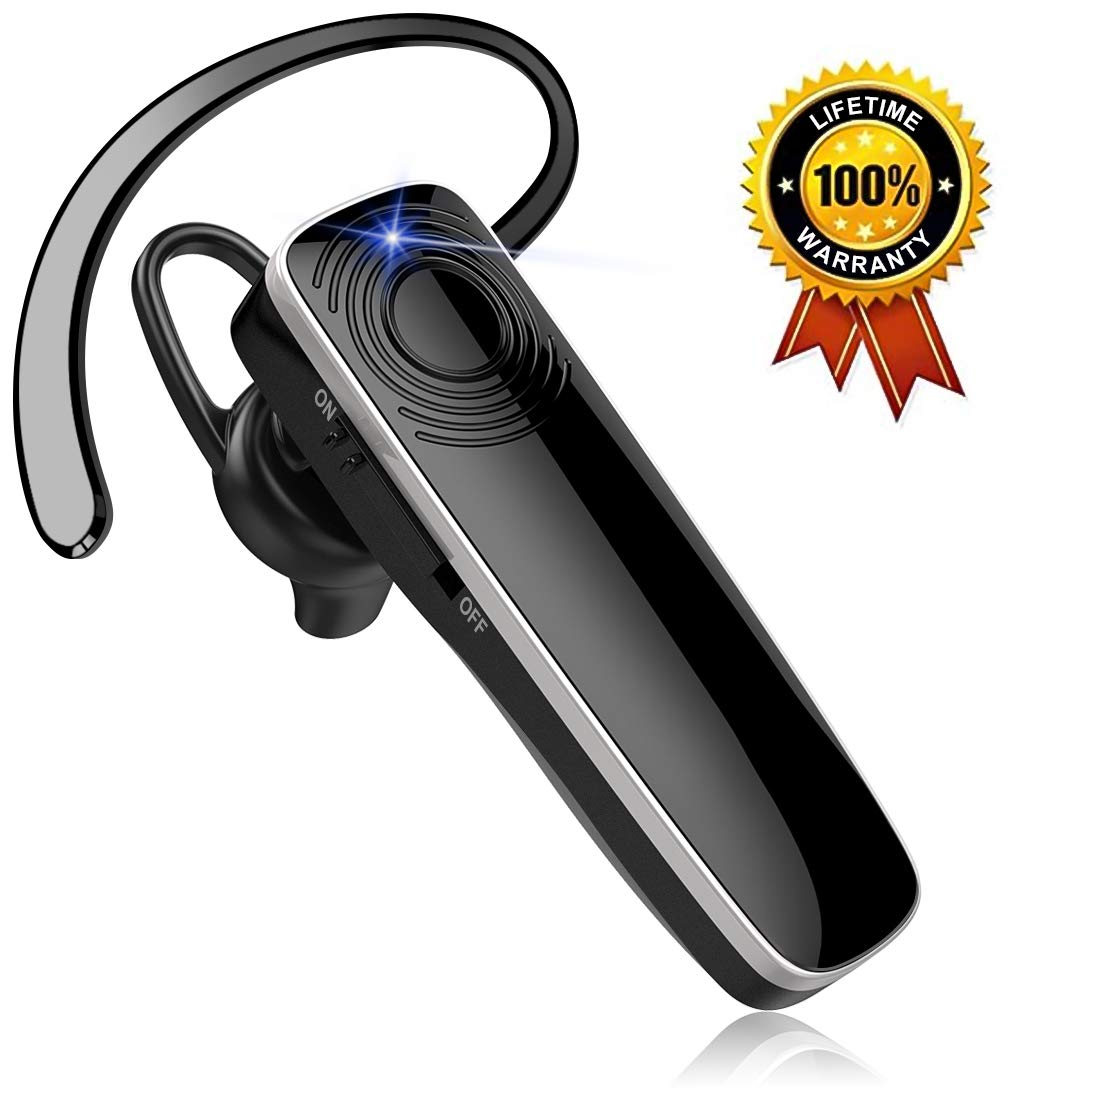 New bee Bluetooth Earpiece HD Stereo Ultralight Wireless Handsfree Headset 12Hrs Talktime Noise Cancelling Mic Driving Headset Compatible with iPhone Android Businessman Driver Trucker by New bee